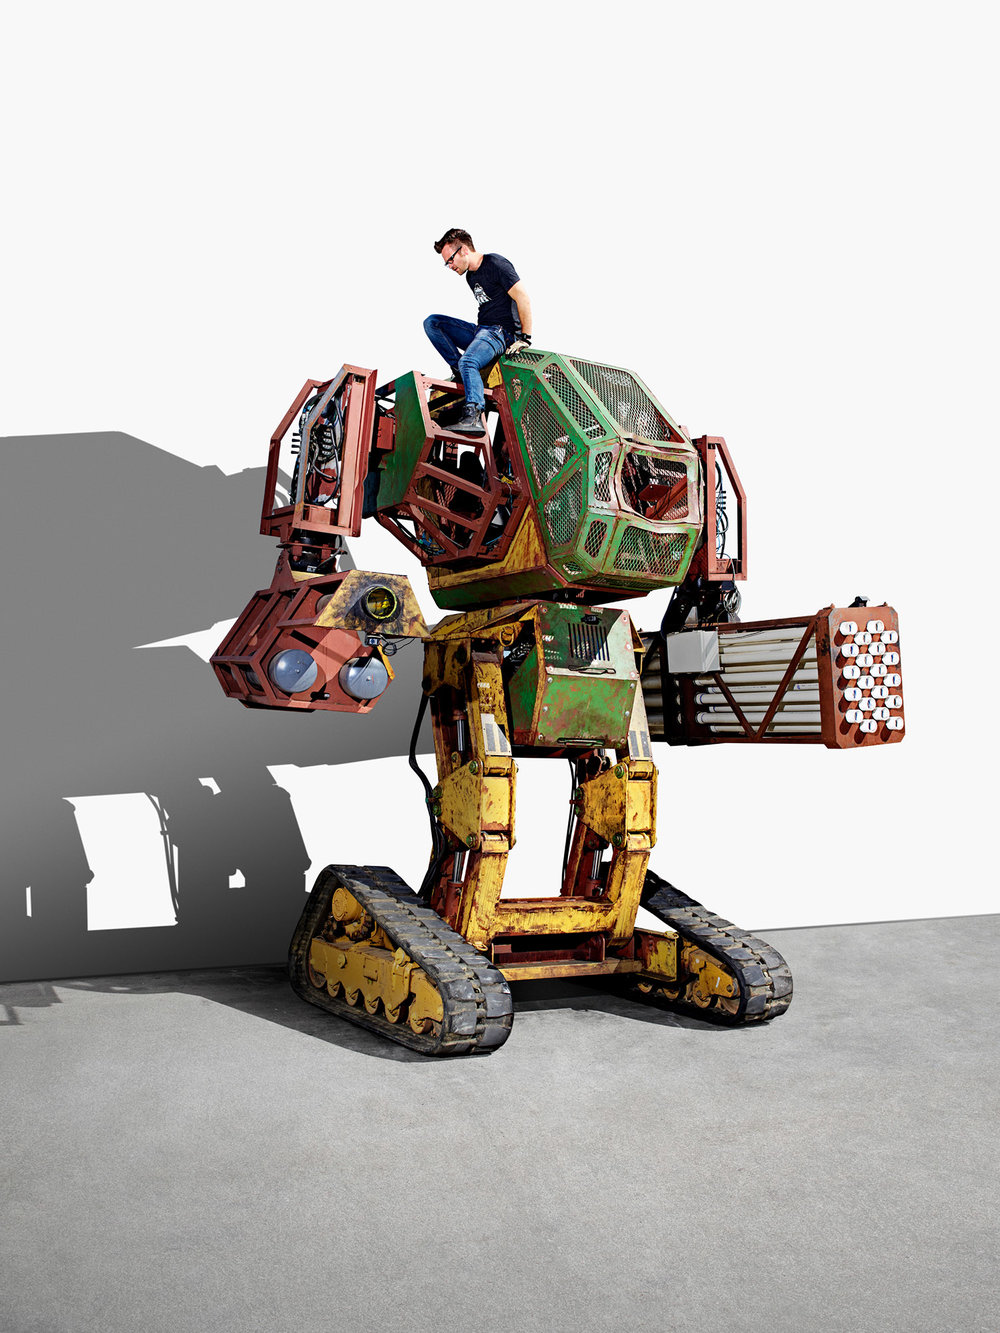 Matt Oehrlein with The Mark III at the MegaBots Headquarters. Oakland, CA